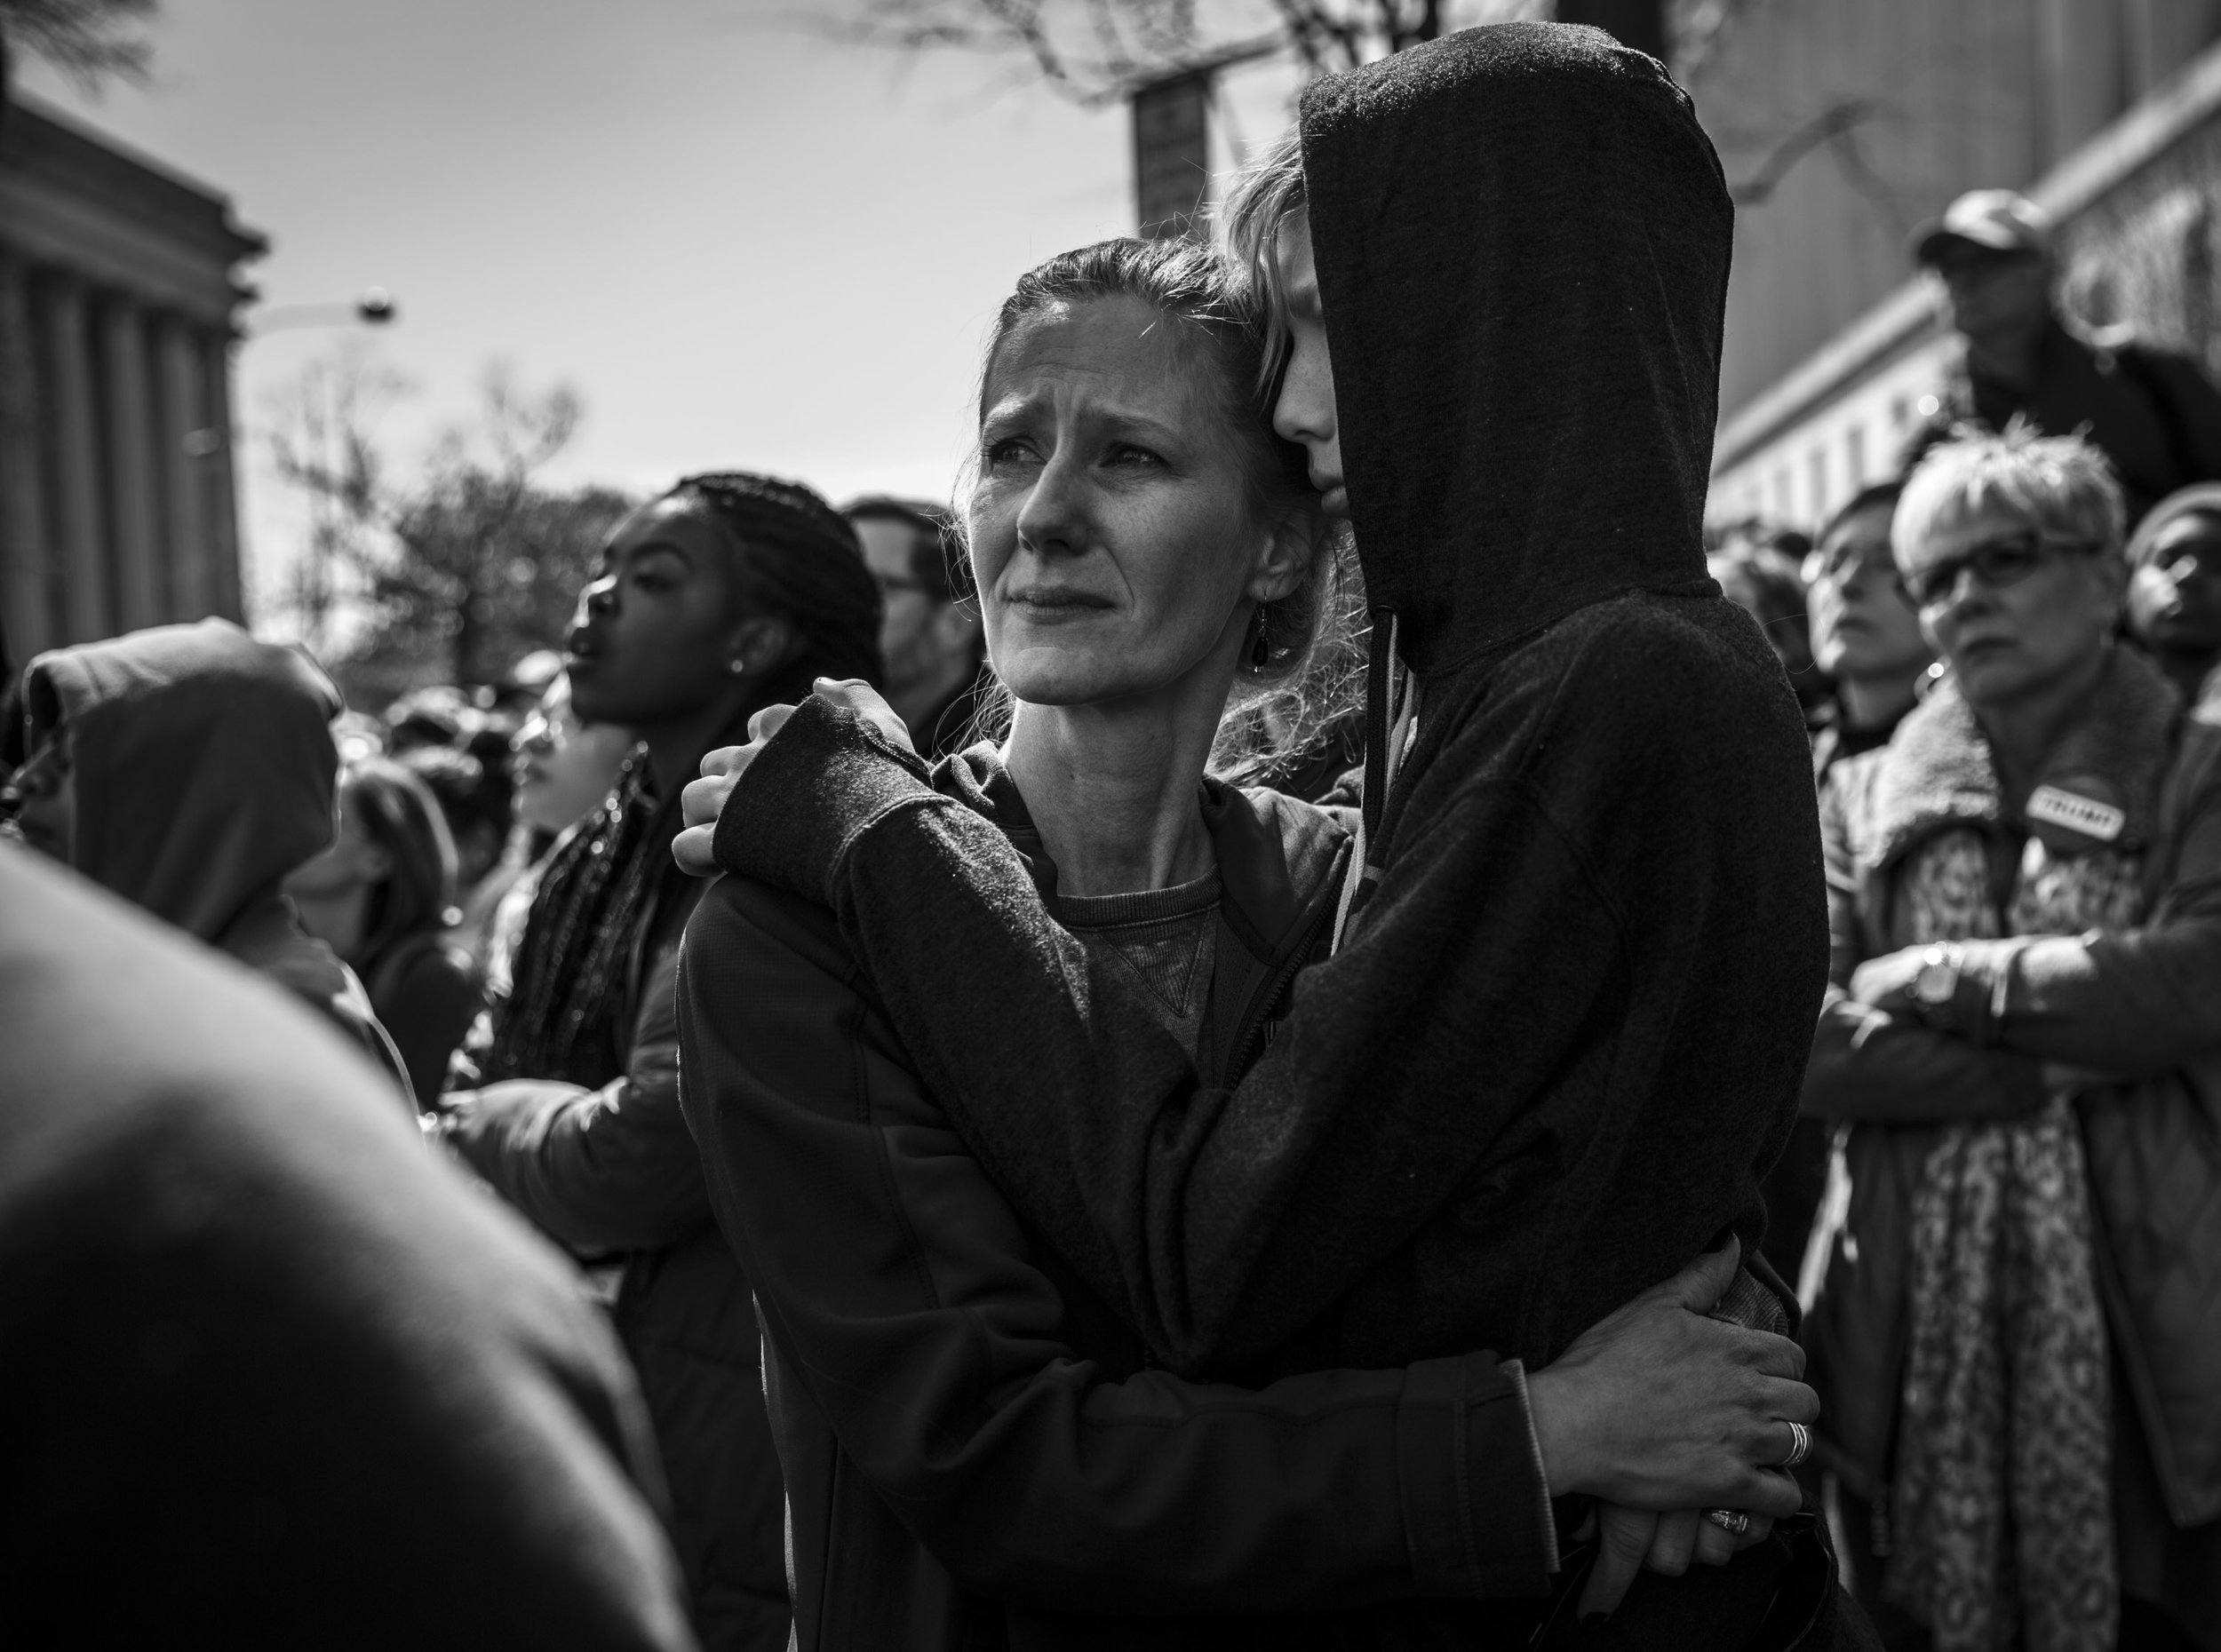 A woman embraces a child during the March For Our Lives in Washington, DC.